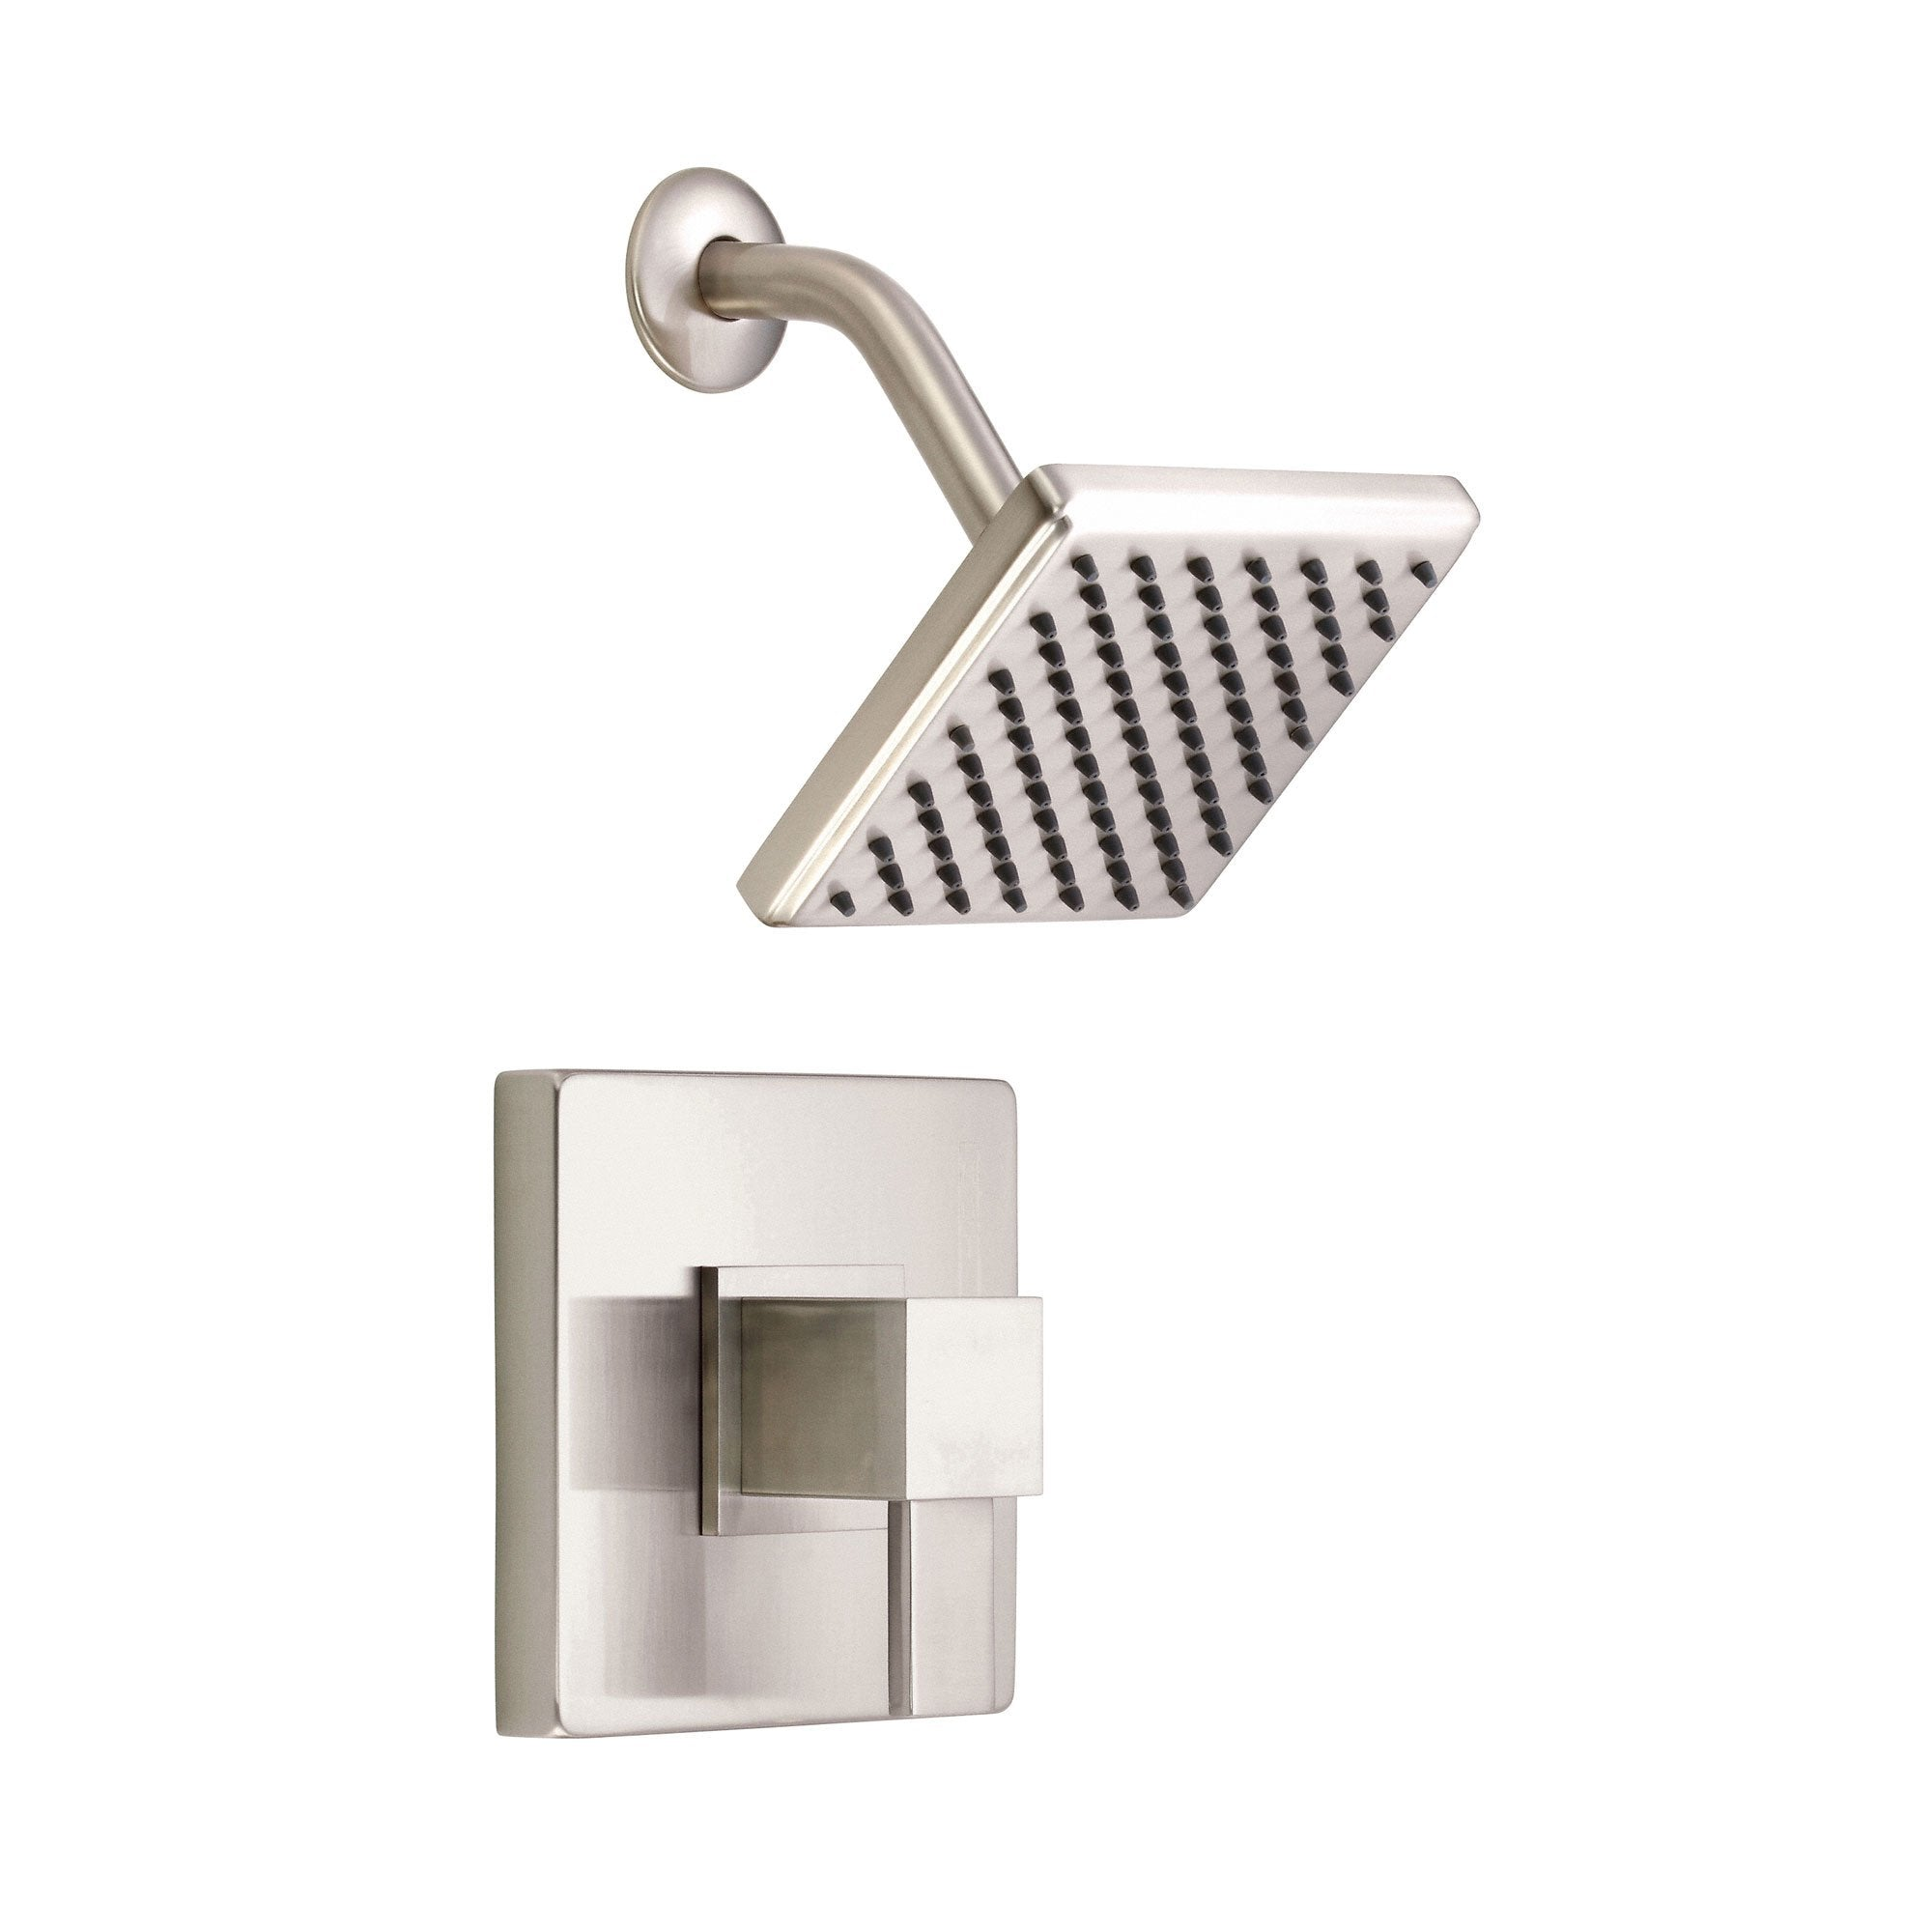 Danze Reef Brushed Nickel Modern Single Handle Square Shower Only Faucet INCLUDES Rough-in Valve